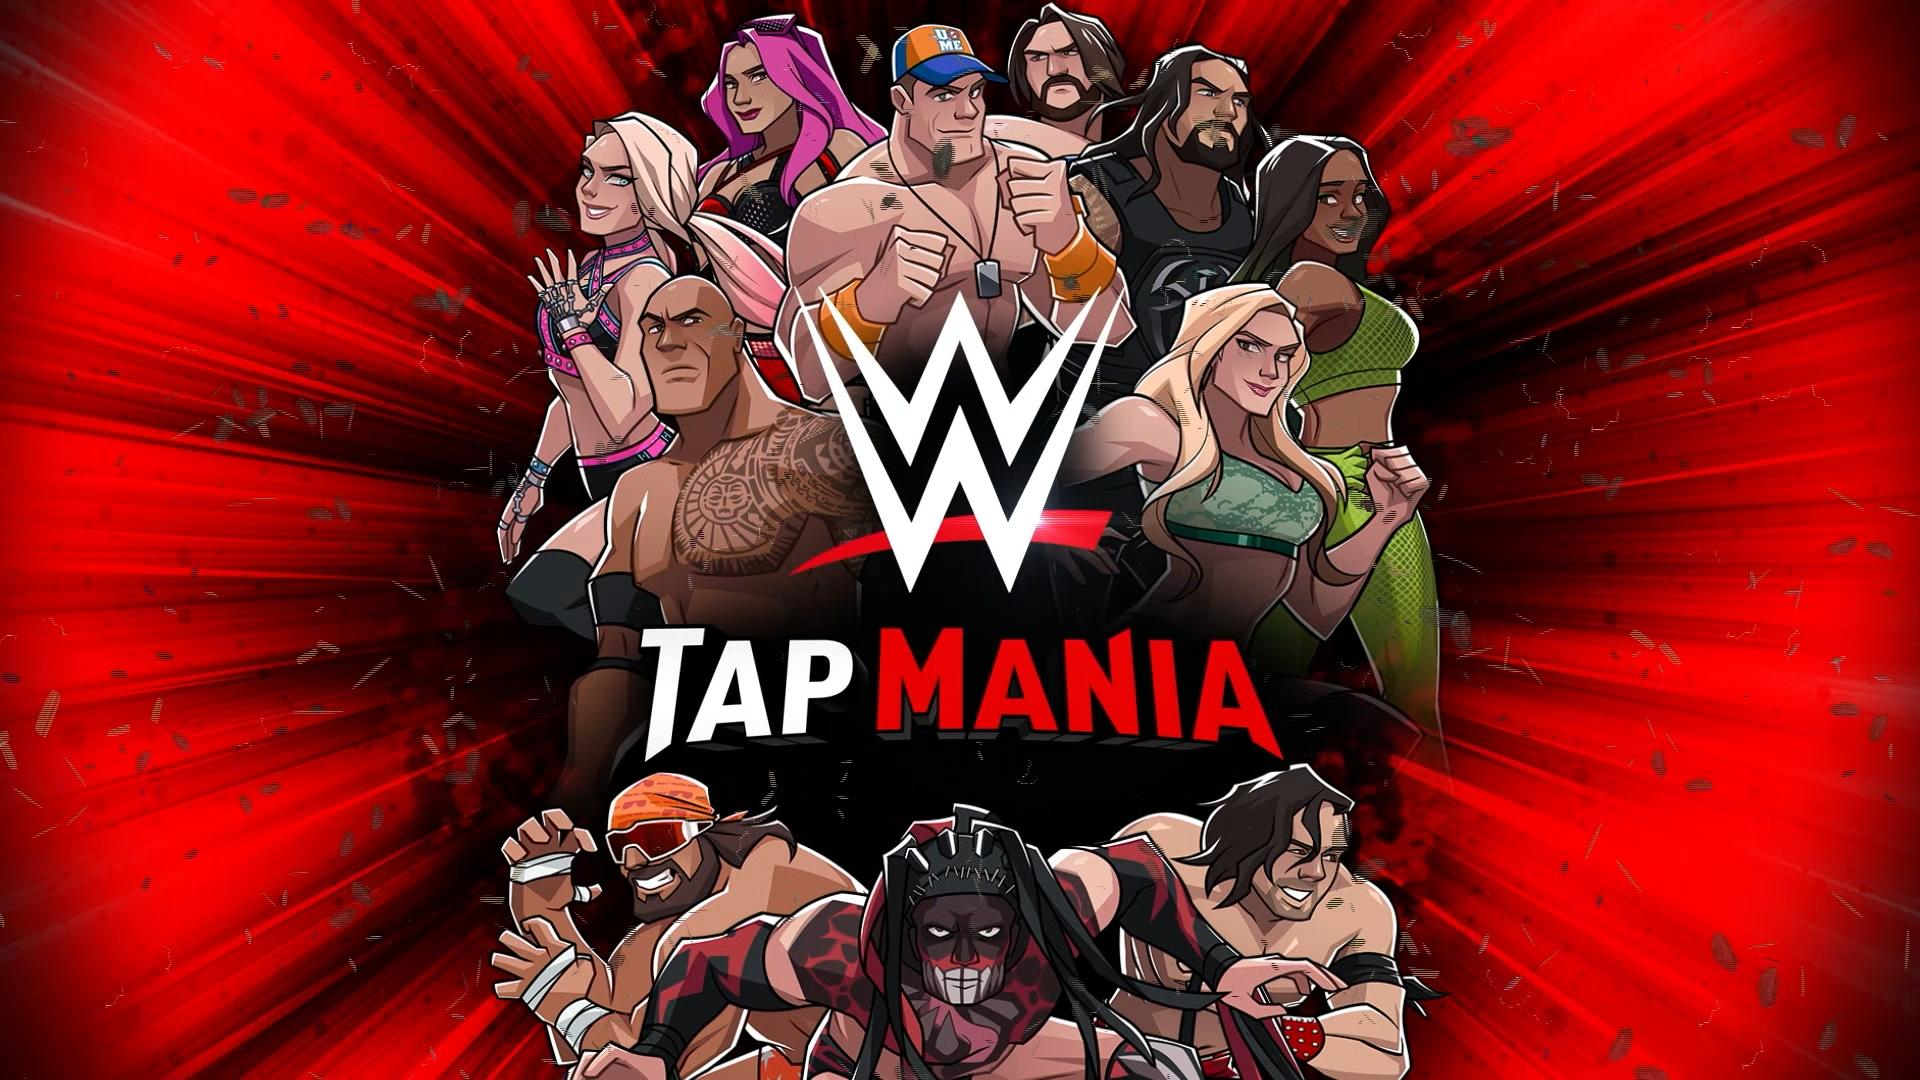 WWE TapMania Wallpaper